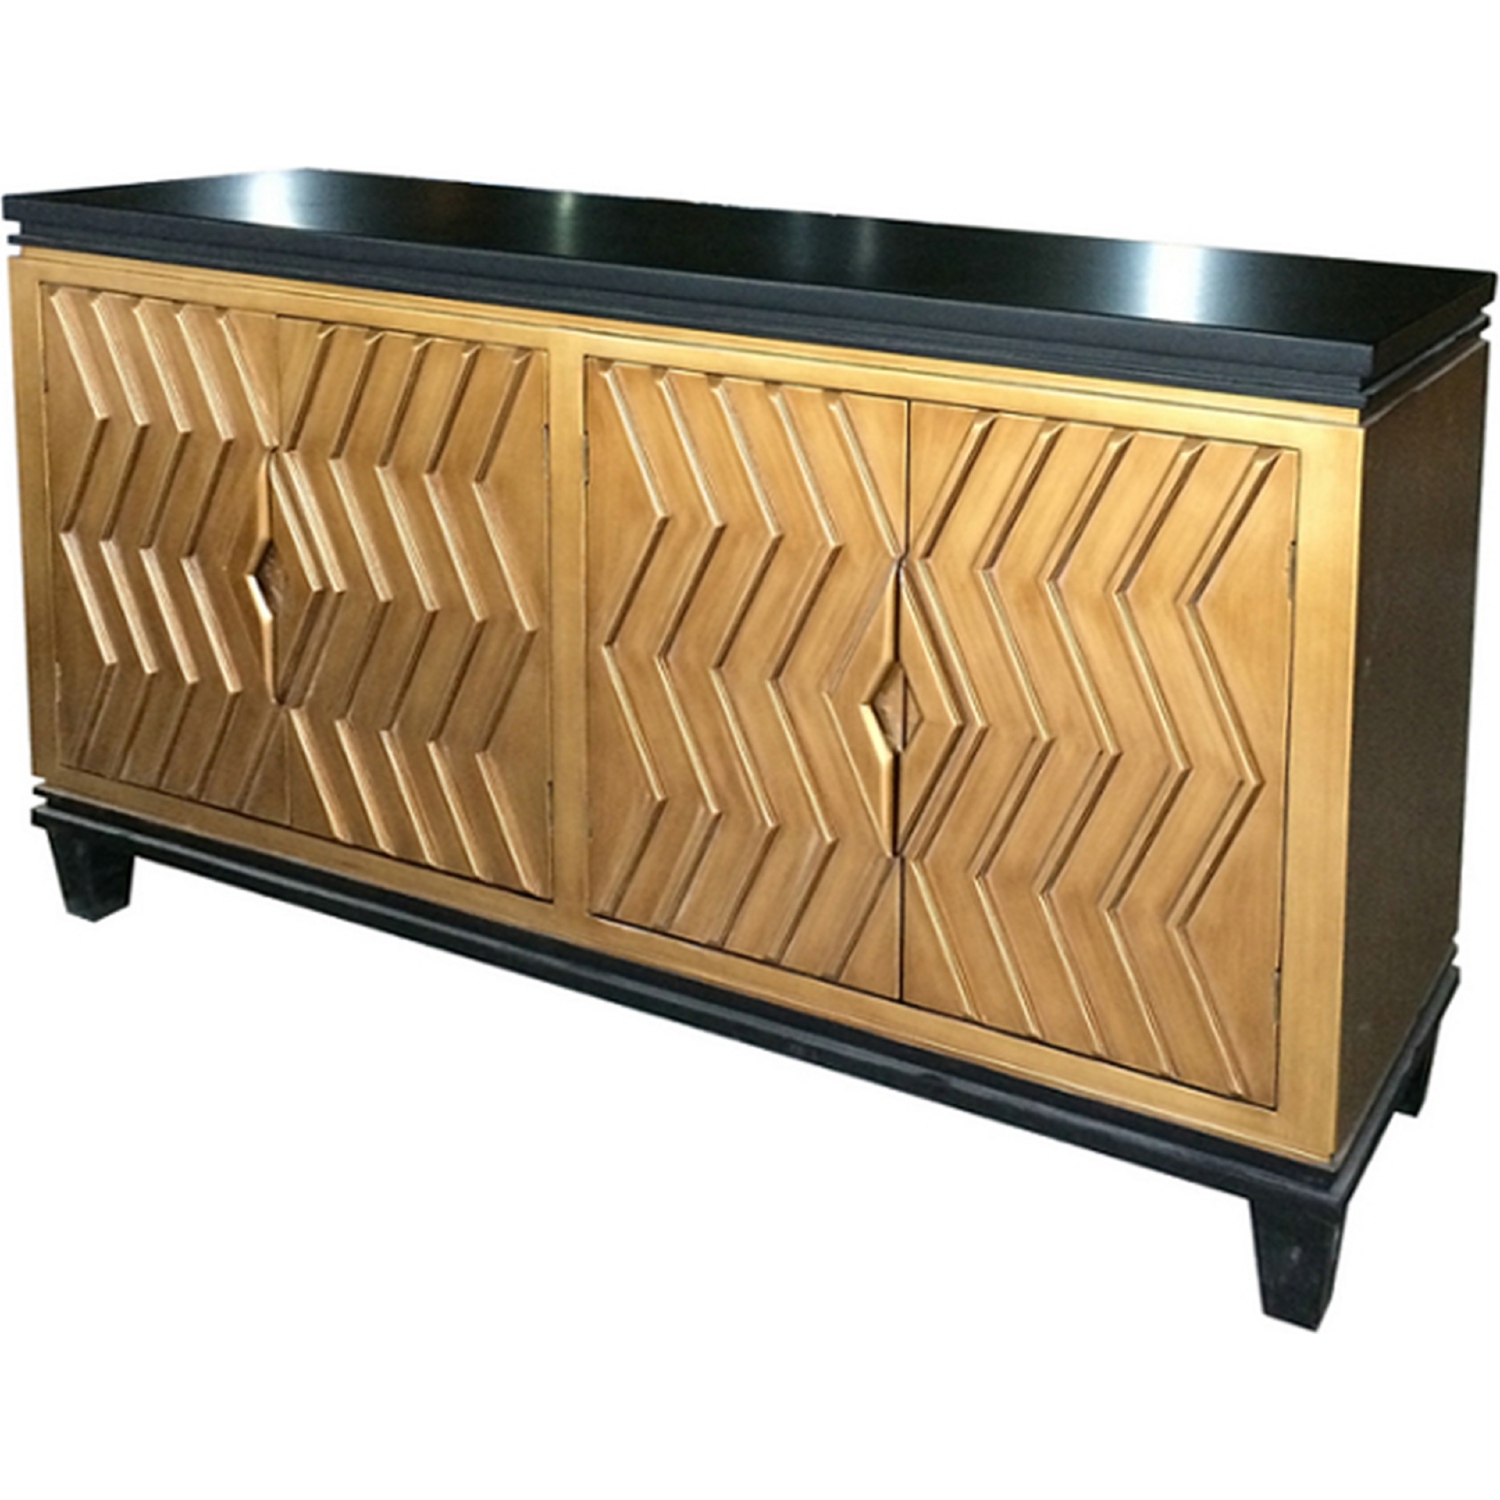 New pacific direct alessio artdeco sideboard in black w gold doors